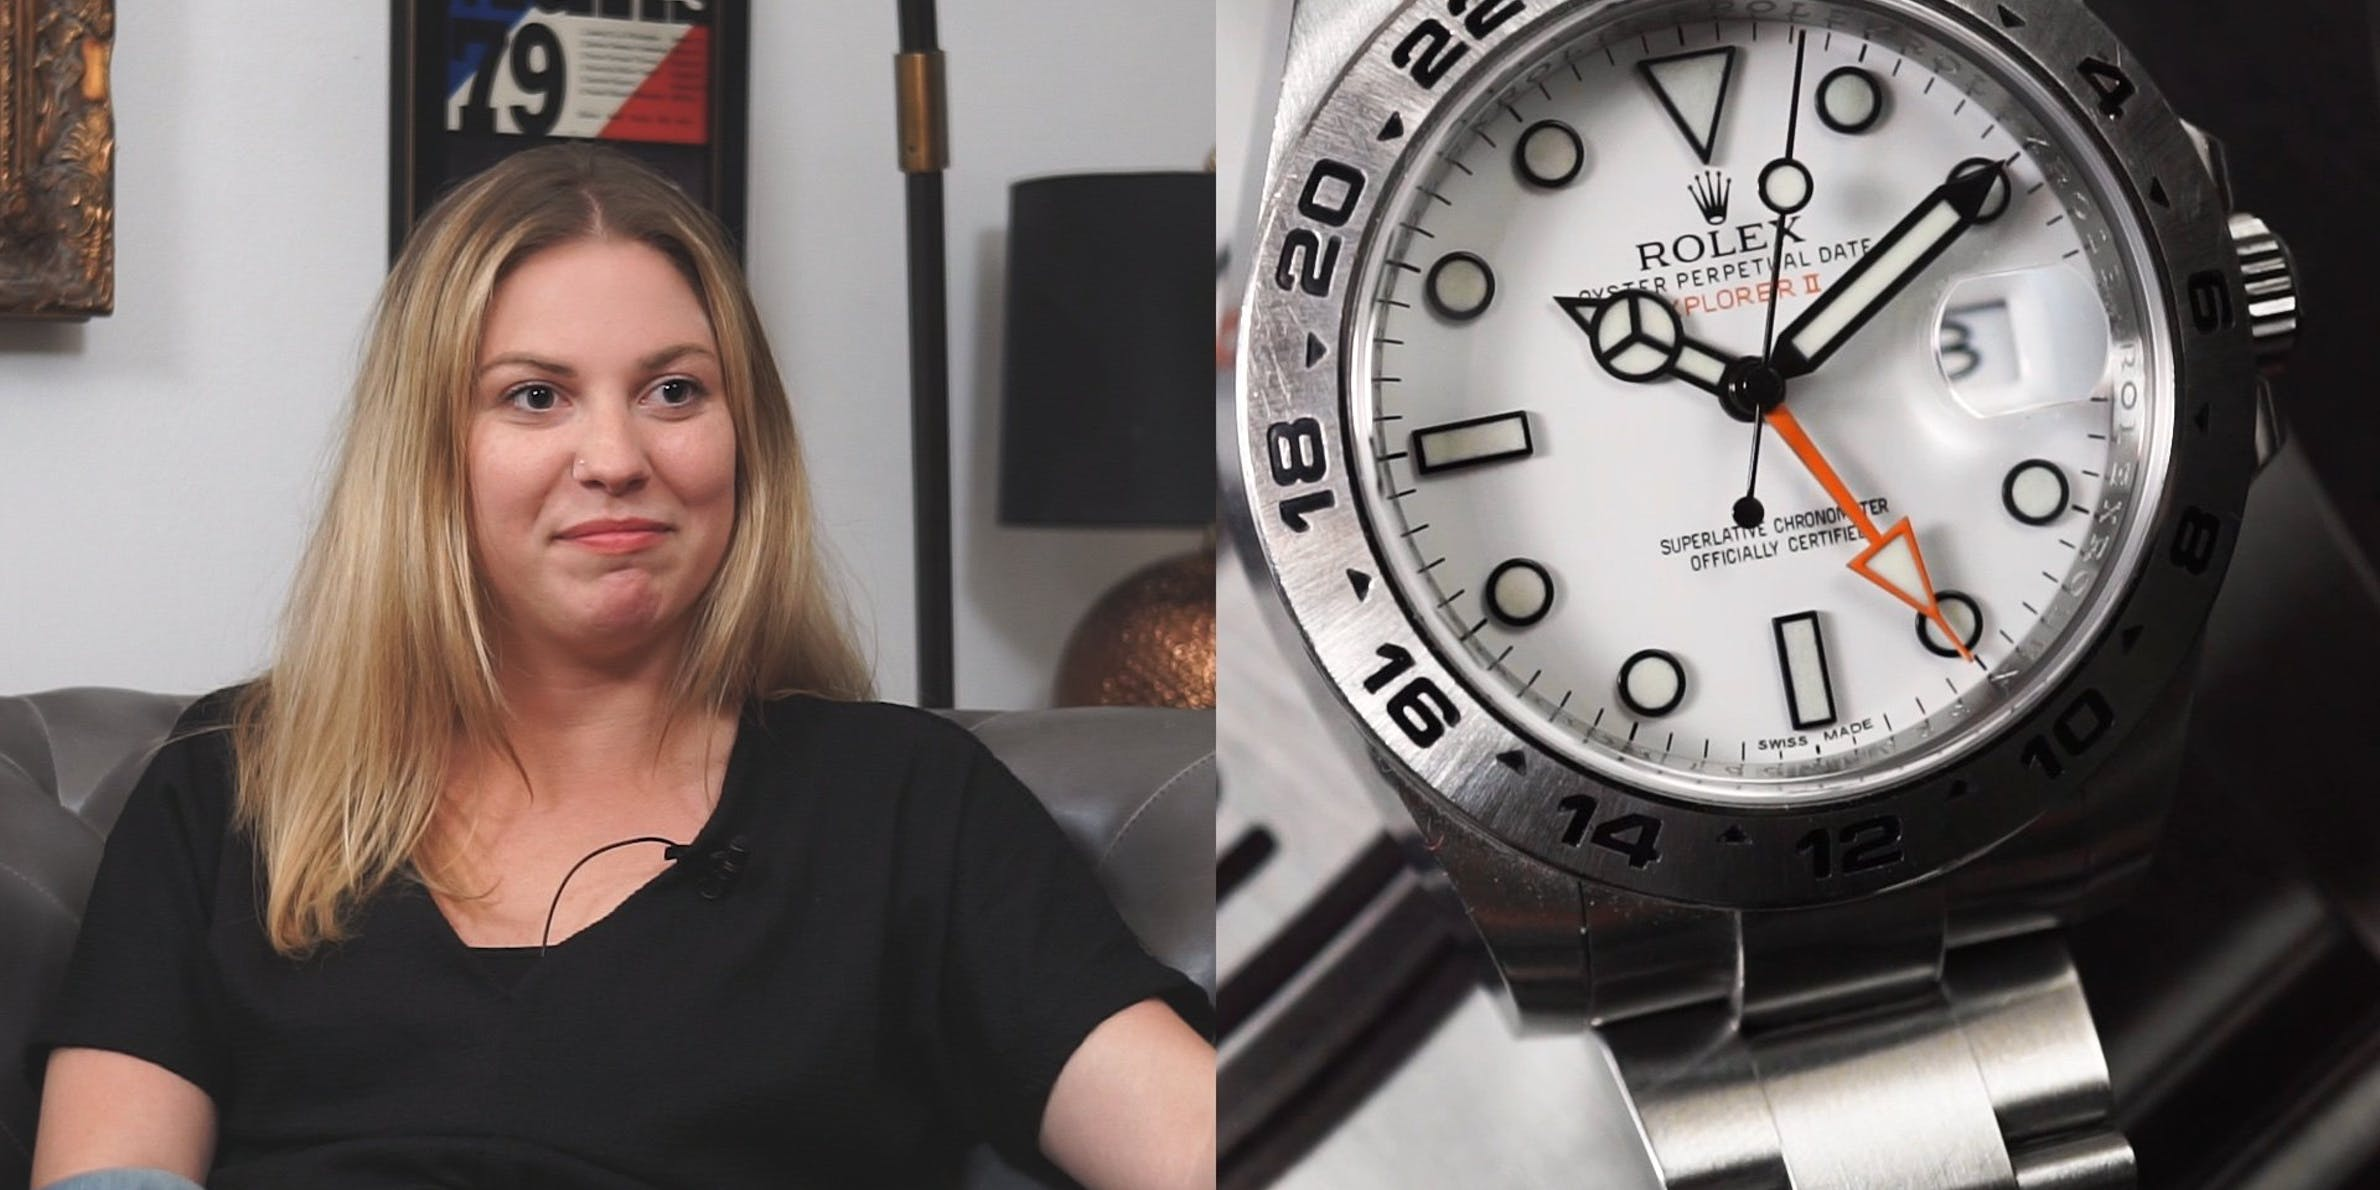 Design, technology, passion: Interest in luxury watches is certainly contagious!